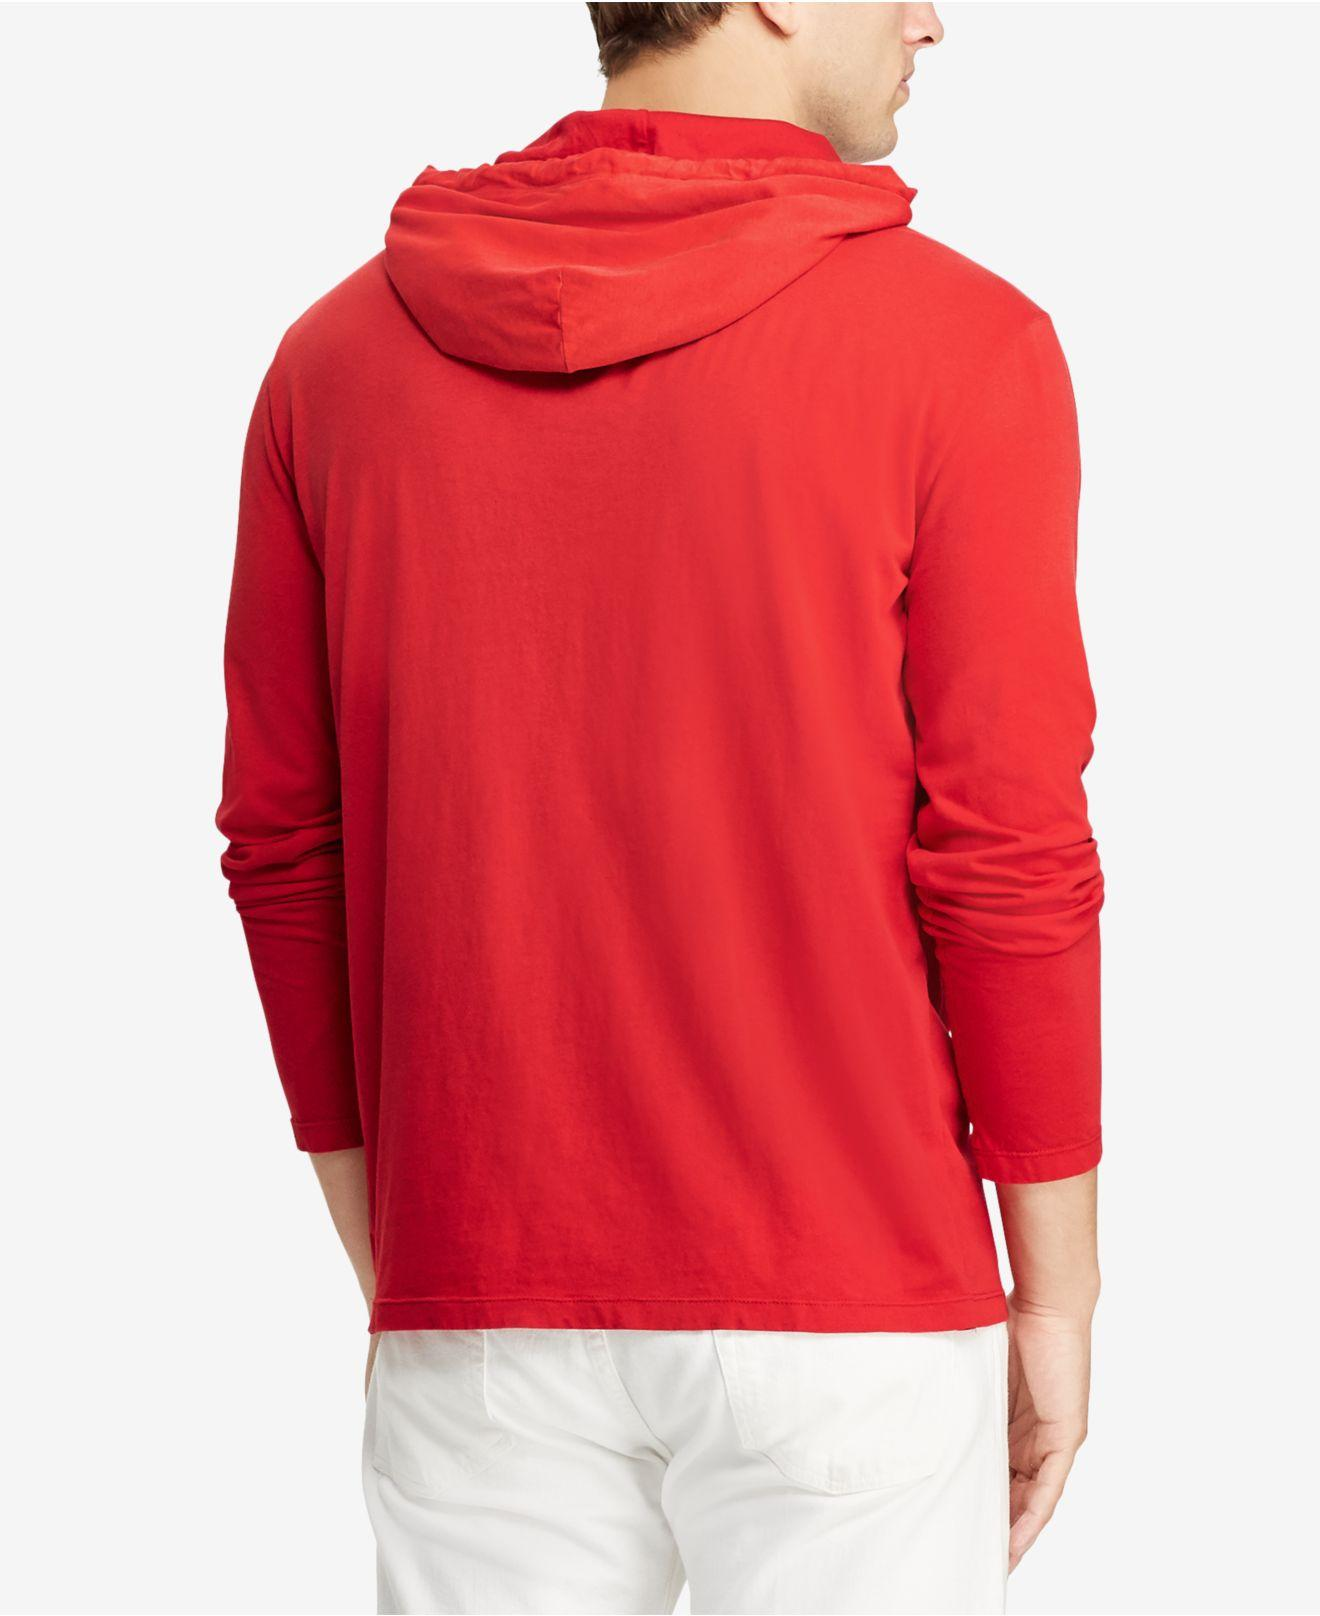 301f752b0 Lyst - Polo Ralph Lauren Long-sleeve Hooded T-shirt in Red for Men - Save  25%